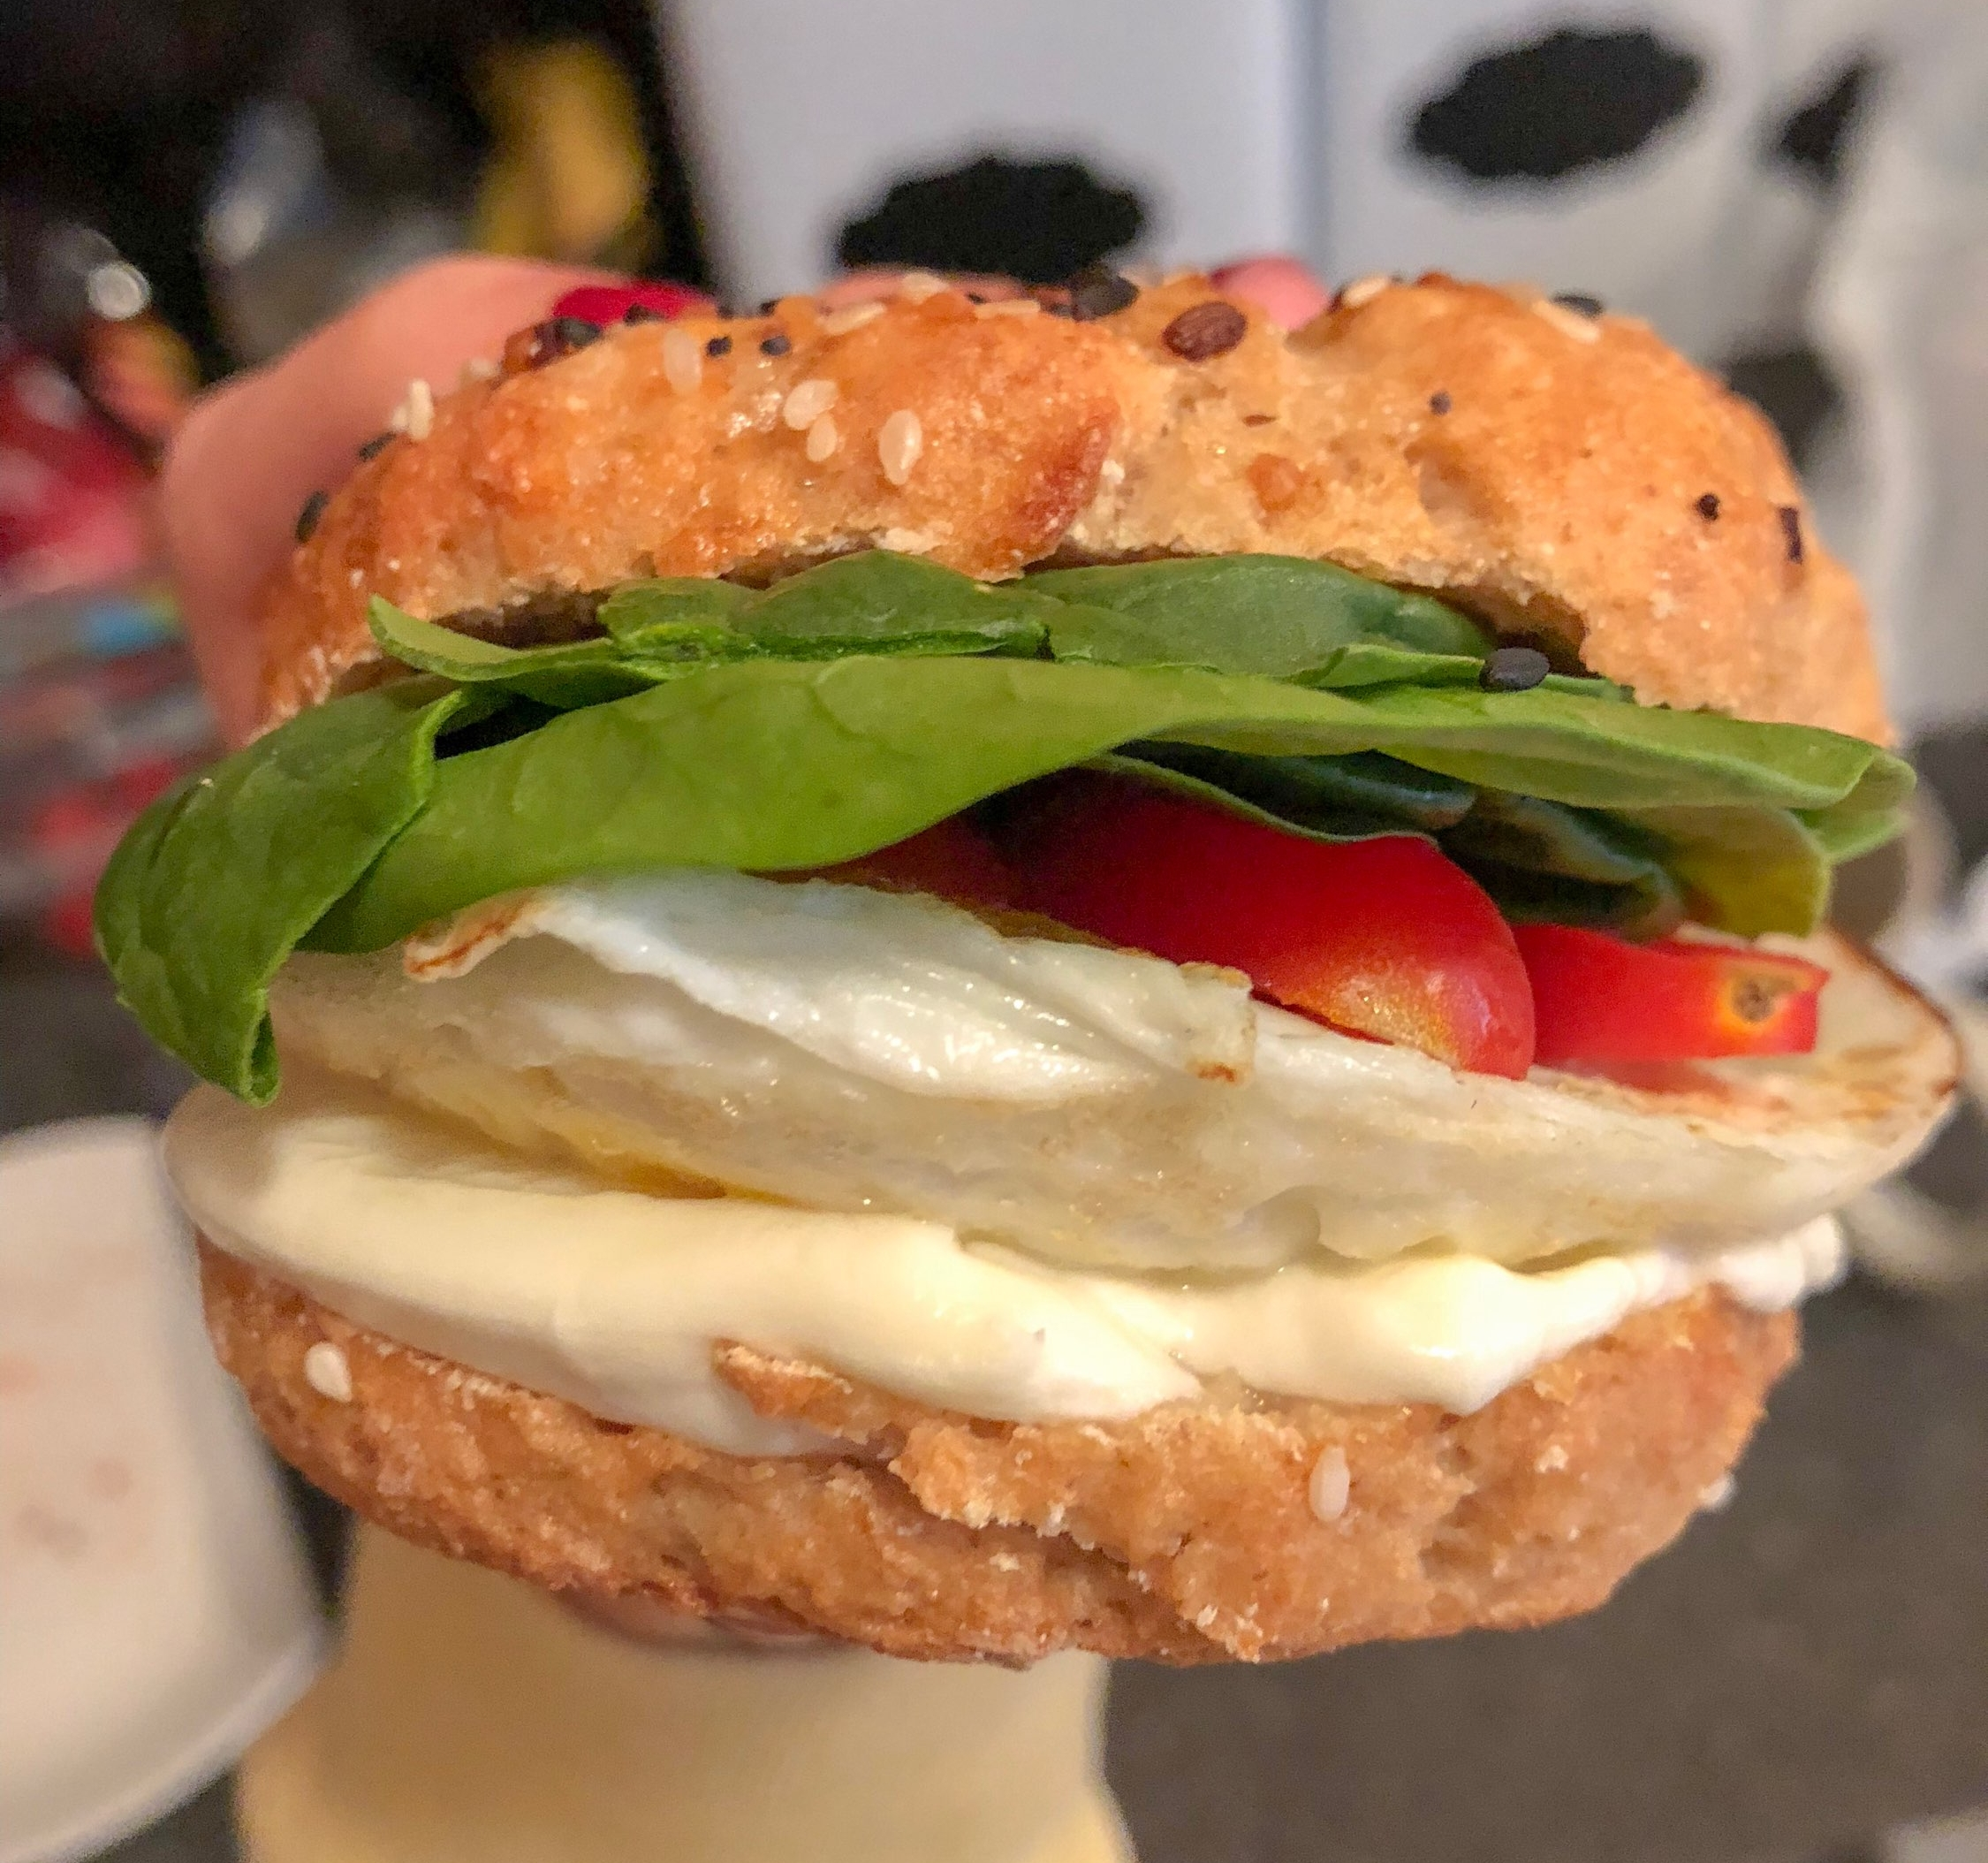 Pictured above: my breakfast sandwich- over medium egg, spinach, tomato, & mozzarella, sandwiched between a homemade everything bagel